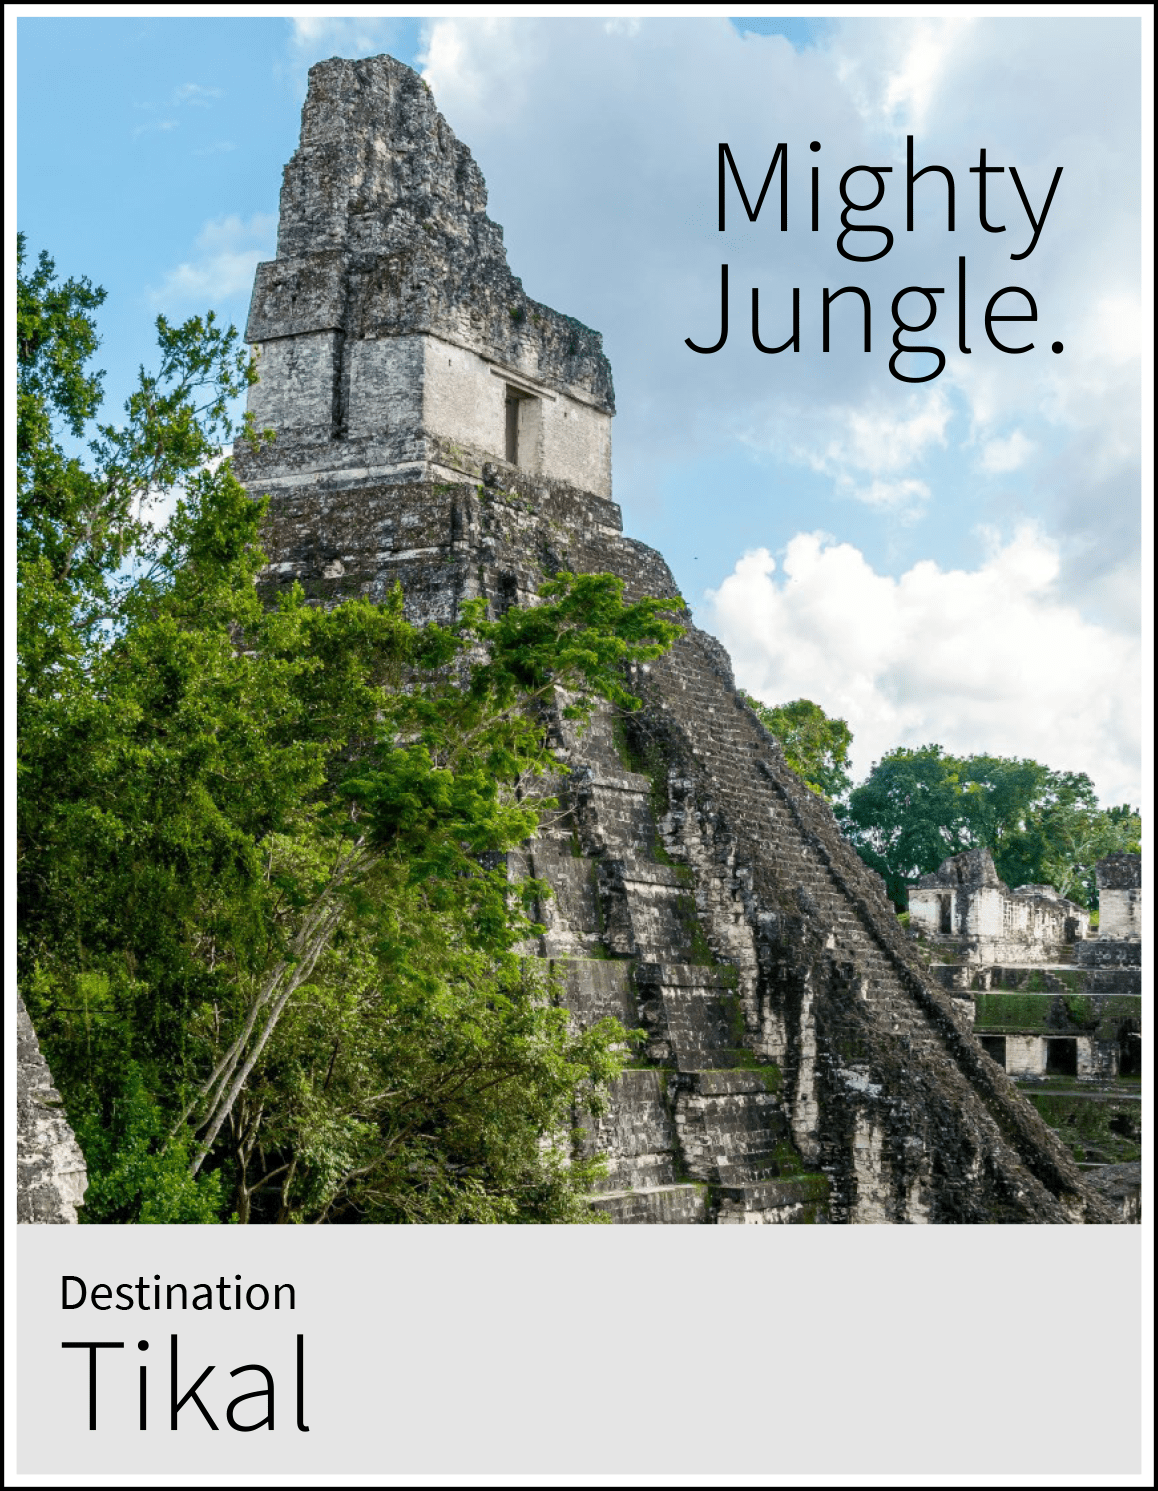 Information about Tikal's history and what to do in Peten.